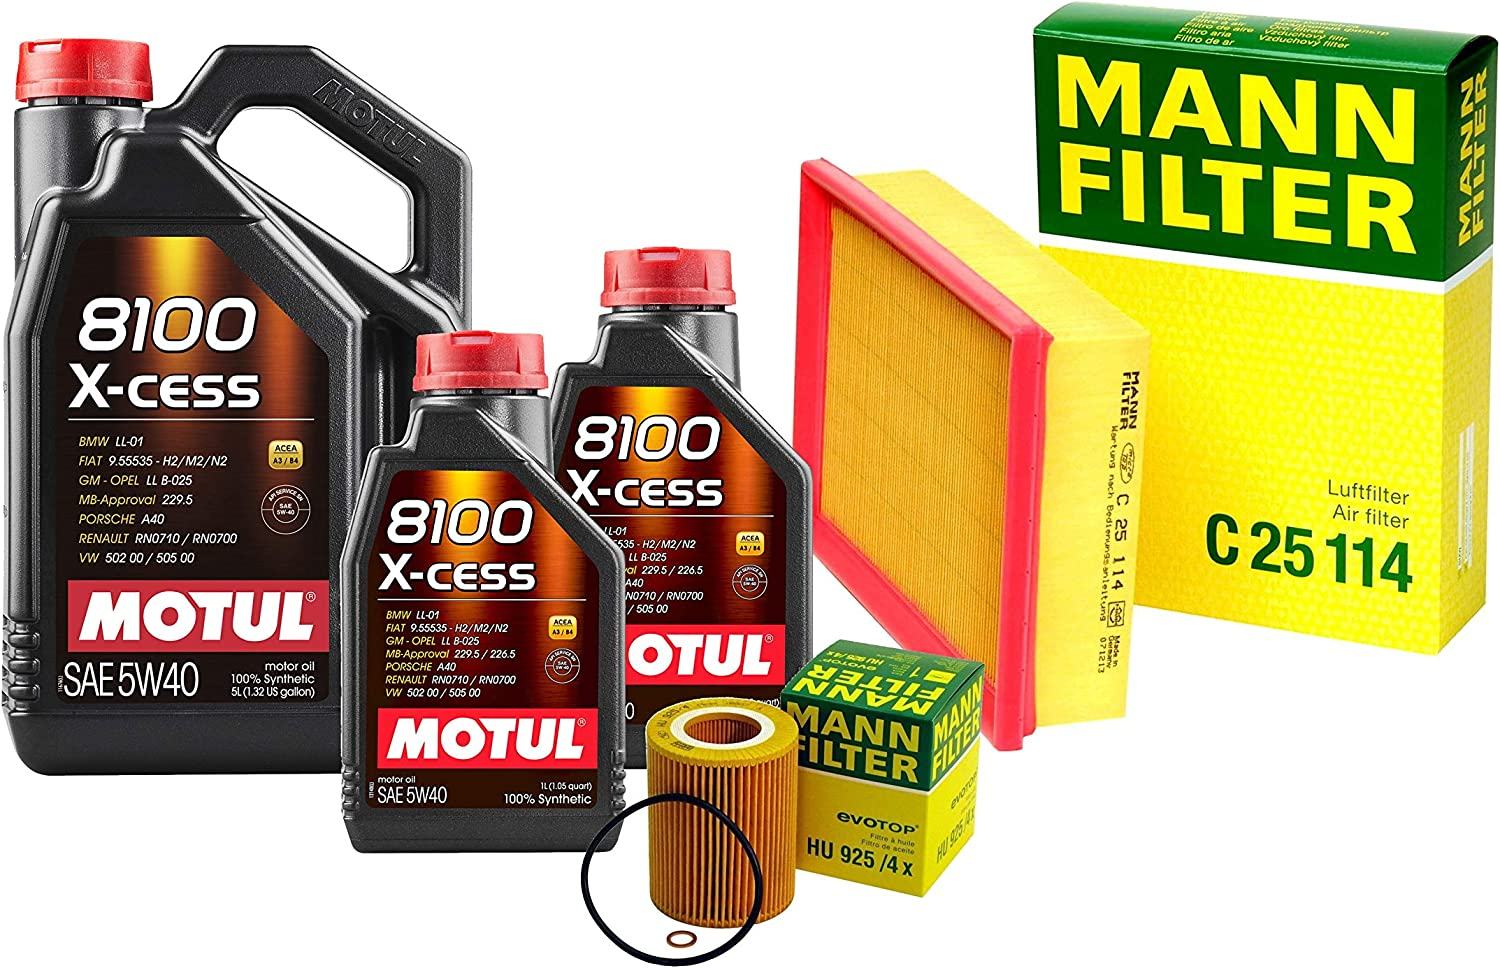 Directly managed store El Paso Mall 7L 8100 X-CESS 5W-40 Filter Motor Air Kit Oil Change 323 For E36